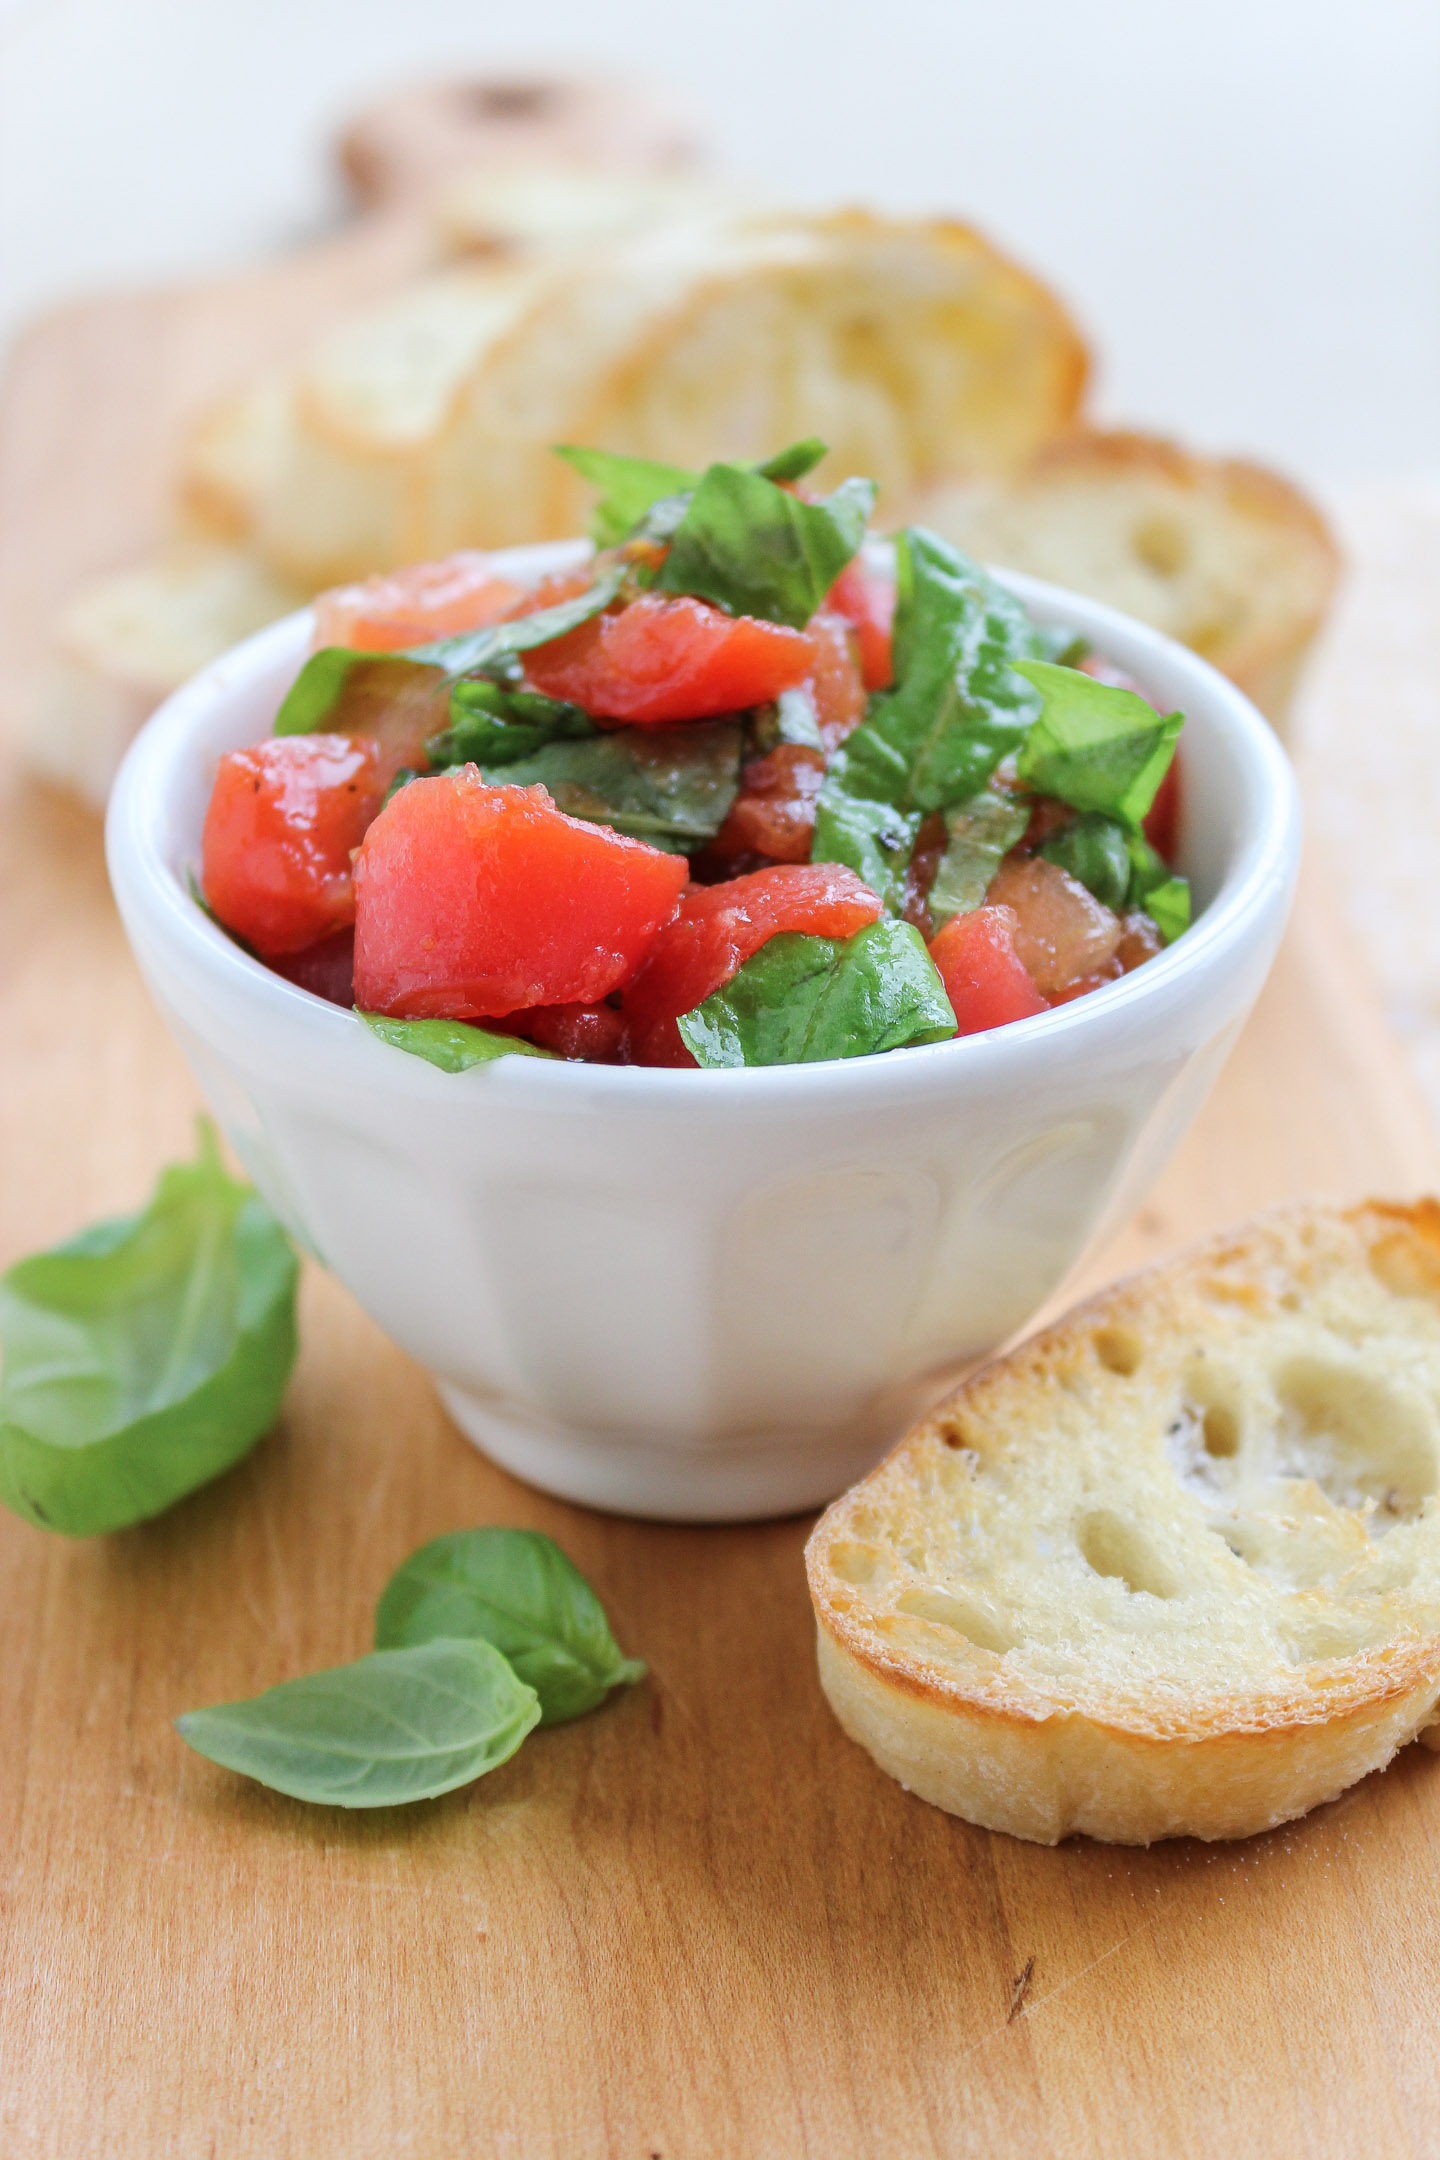 Bruschetta mixture...chopped tomatoes and basil in a bowl next to a slice of bread.